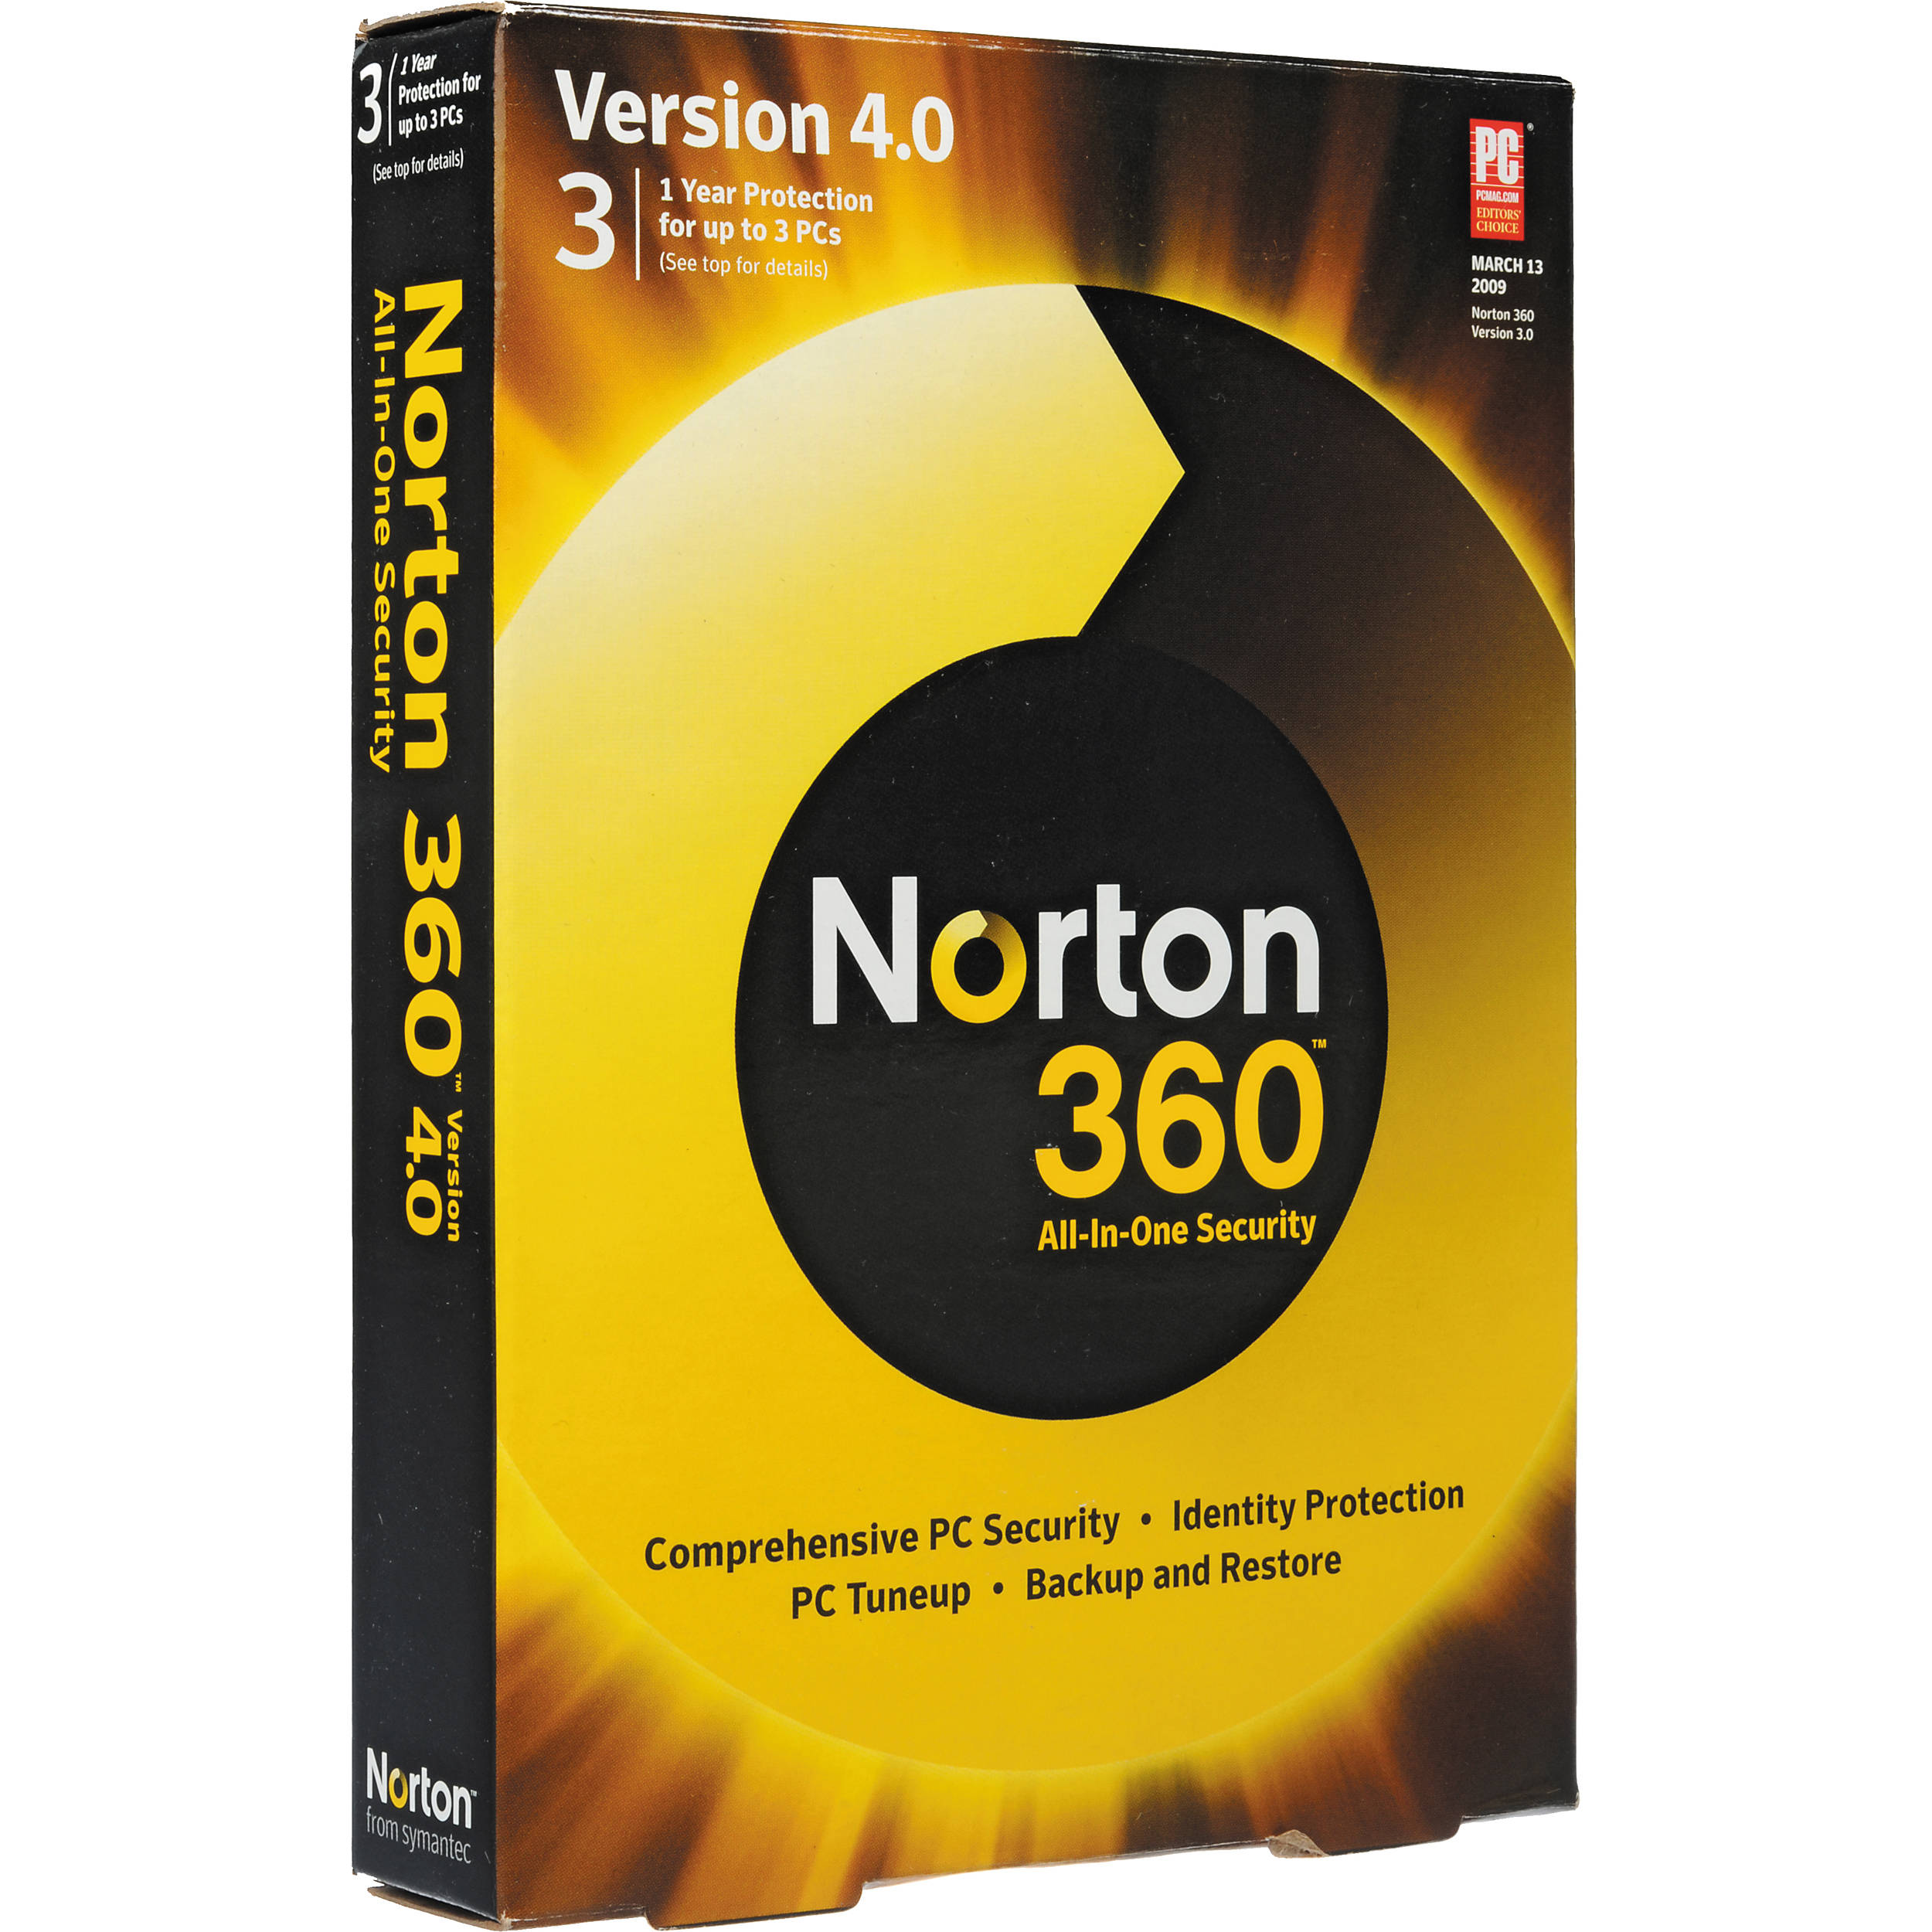 Norton Security version stops viruses, spyware, malware, worms, Trojans. Standard, Deluxe, Premium. Instant discount plus rebate available - Download Norton Security today at a super low price.